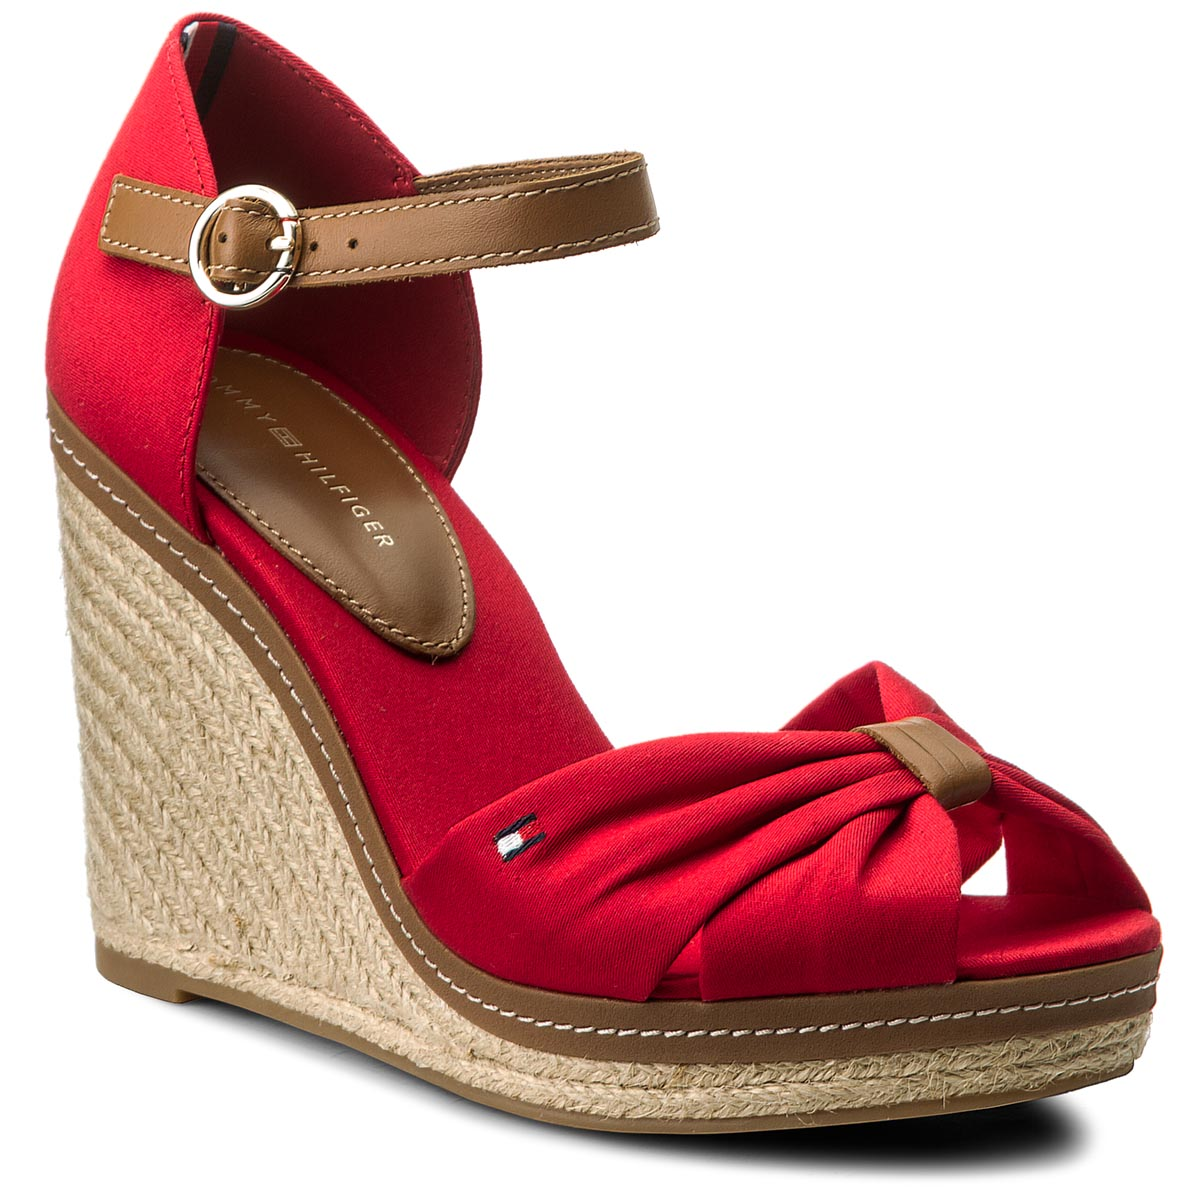 Espadrilles TOMMY HILFIGER - Iconic Elba Sandal FW0FW00906 Tango Red 611